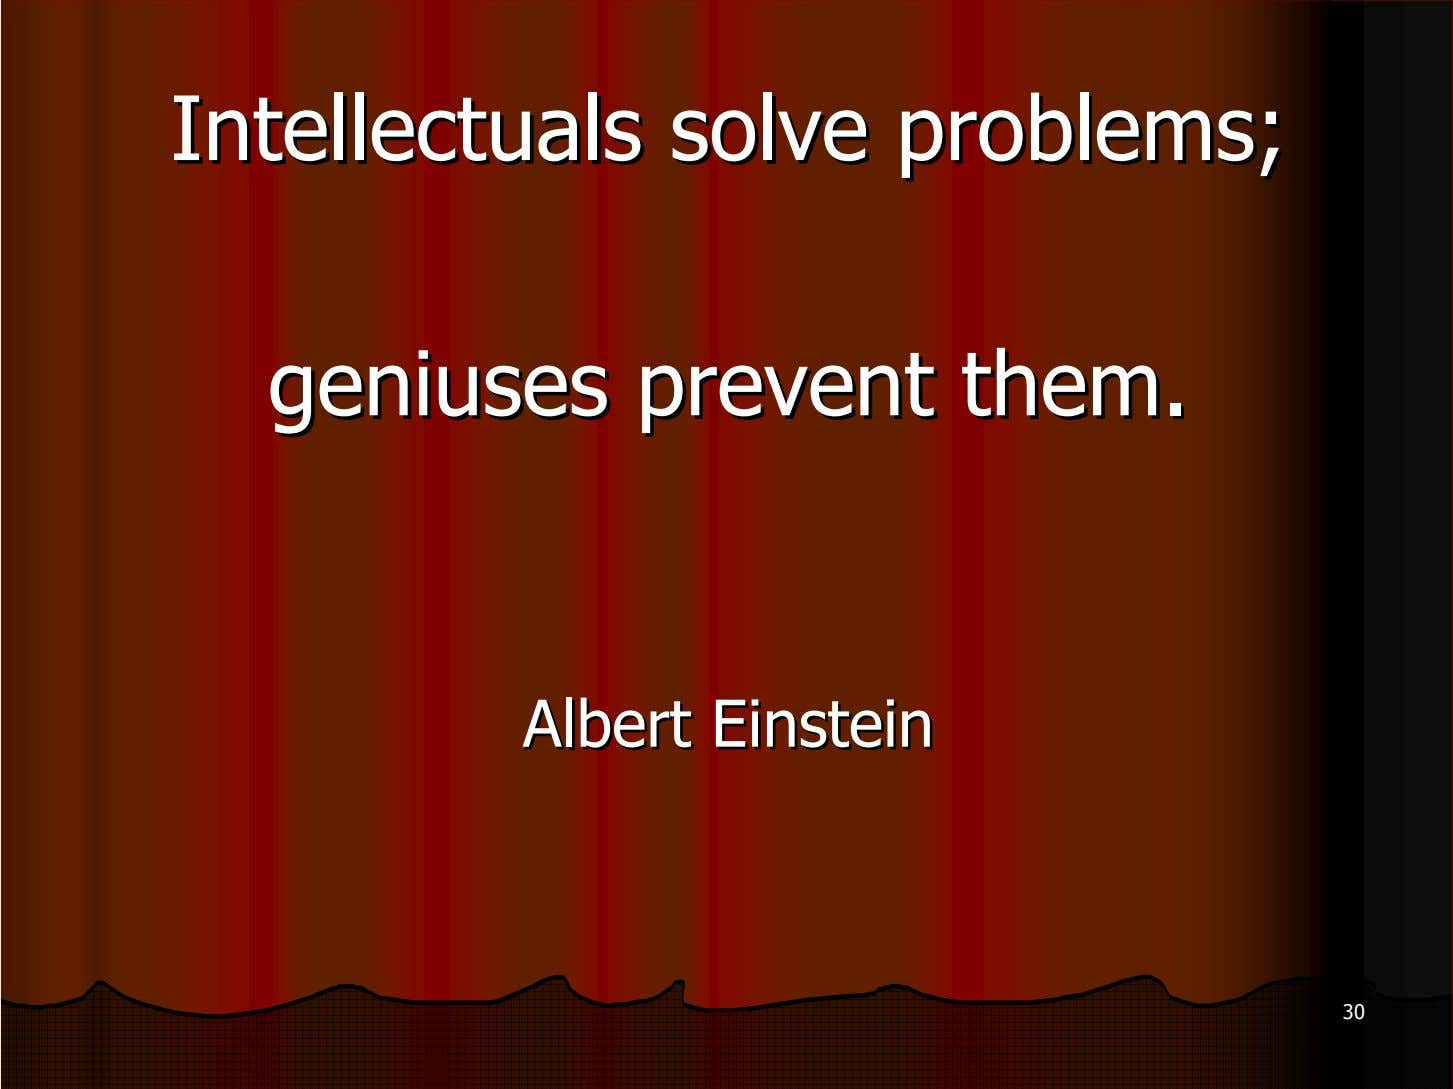 Intellectuals Intellectuals solve solve problems; problems; geniuses geniuses prevent prevent them. them. Albert Albert